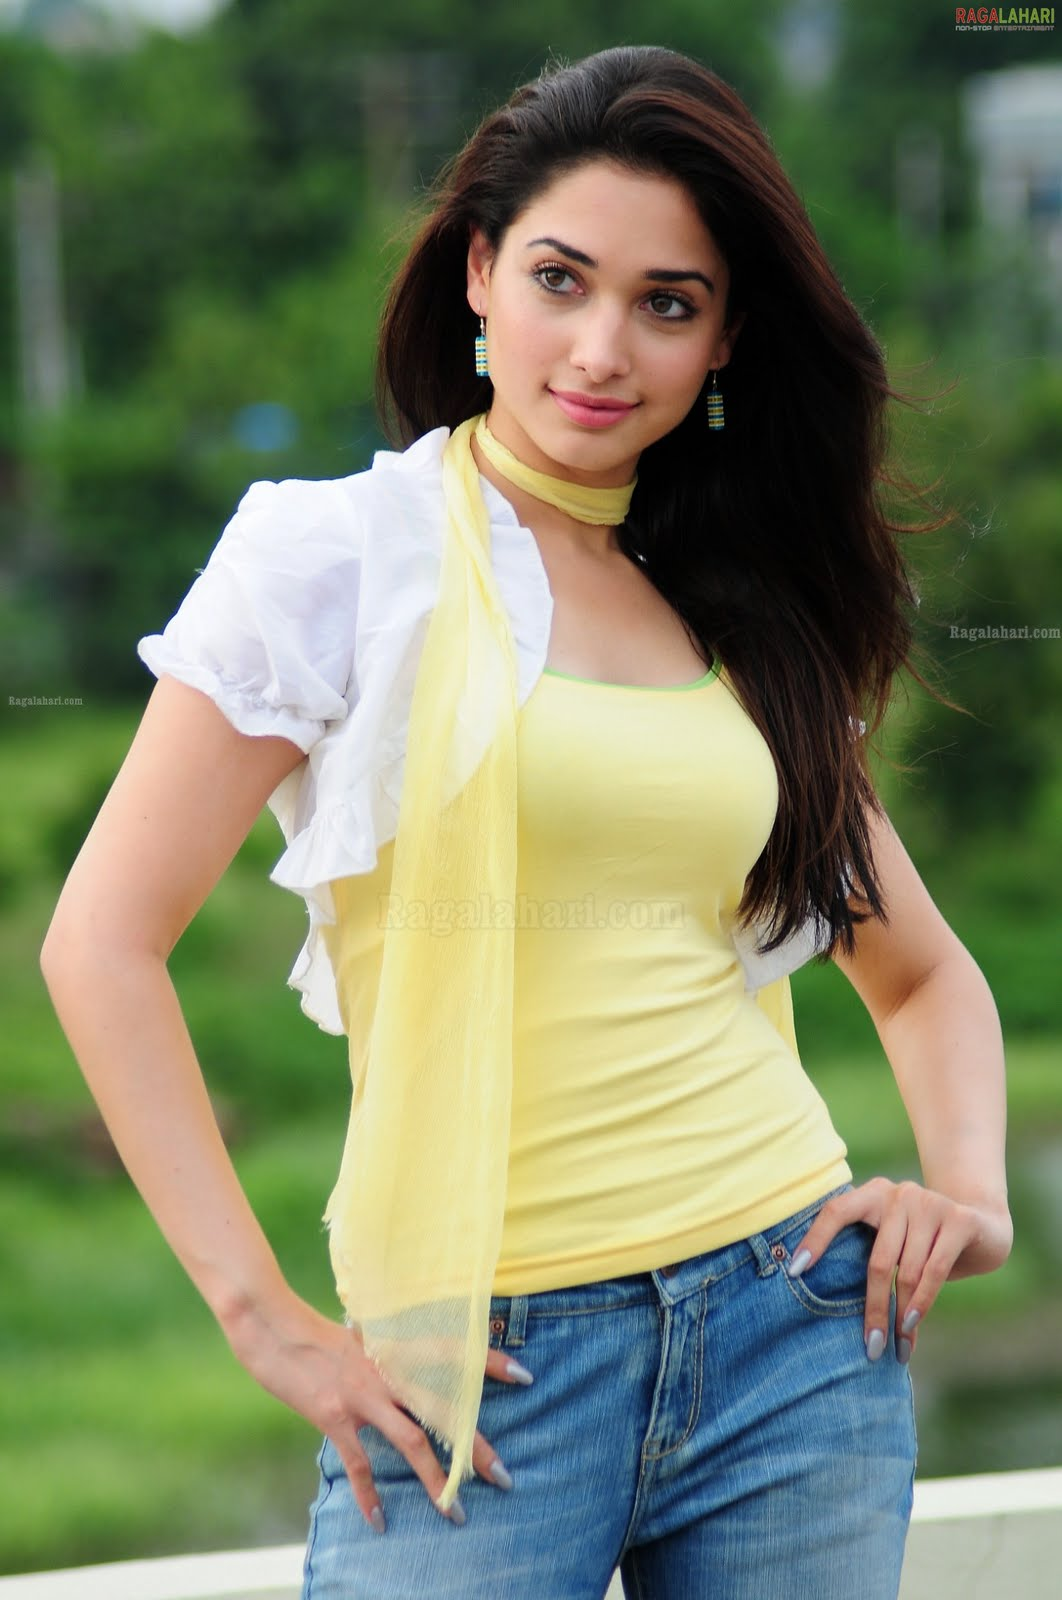 tamanna bhatia hot video